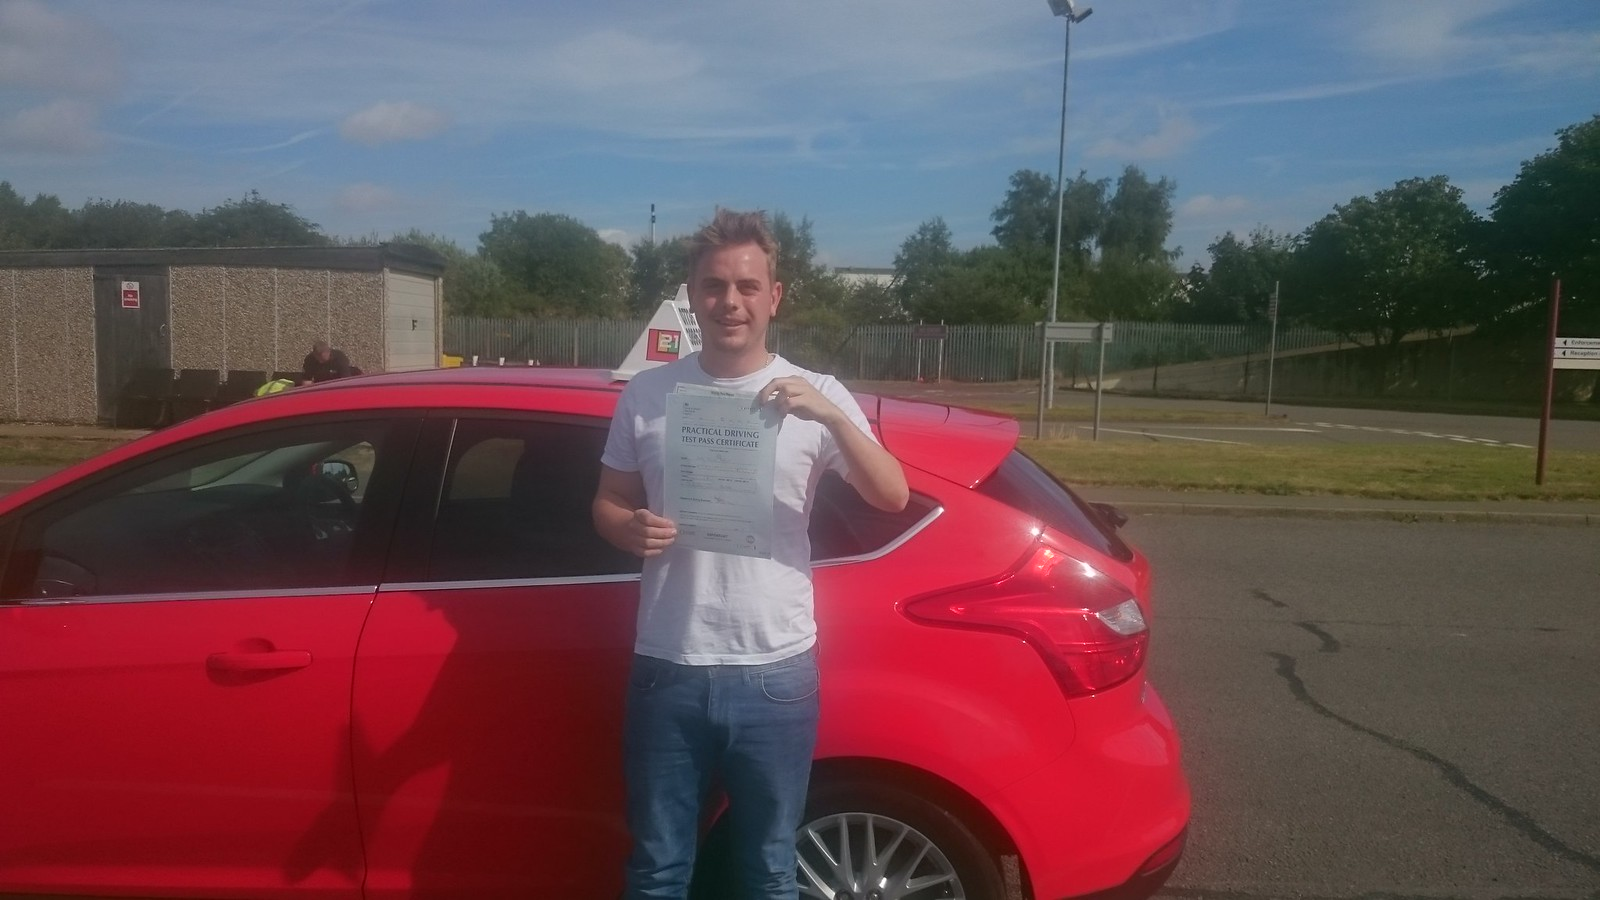 Jack Ashton passes driving test in grimsby with 21st Century Driving